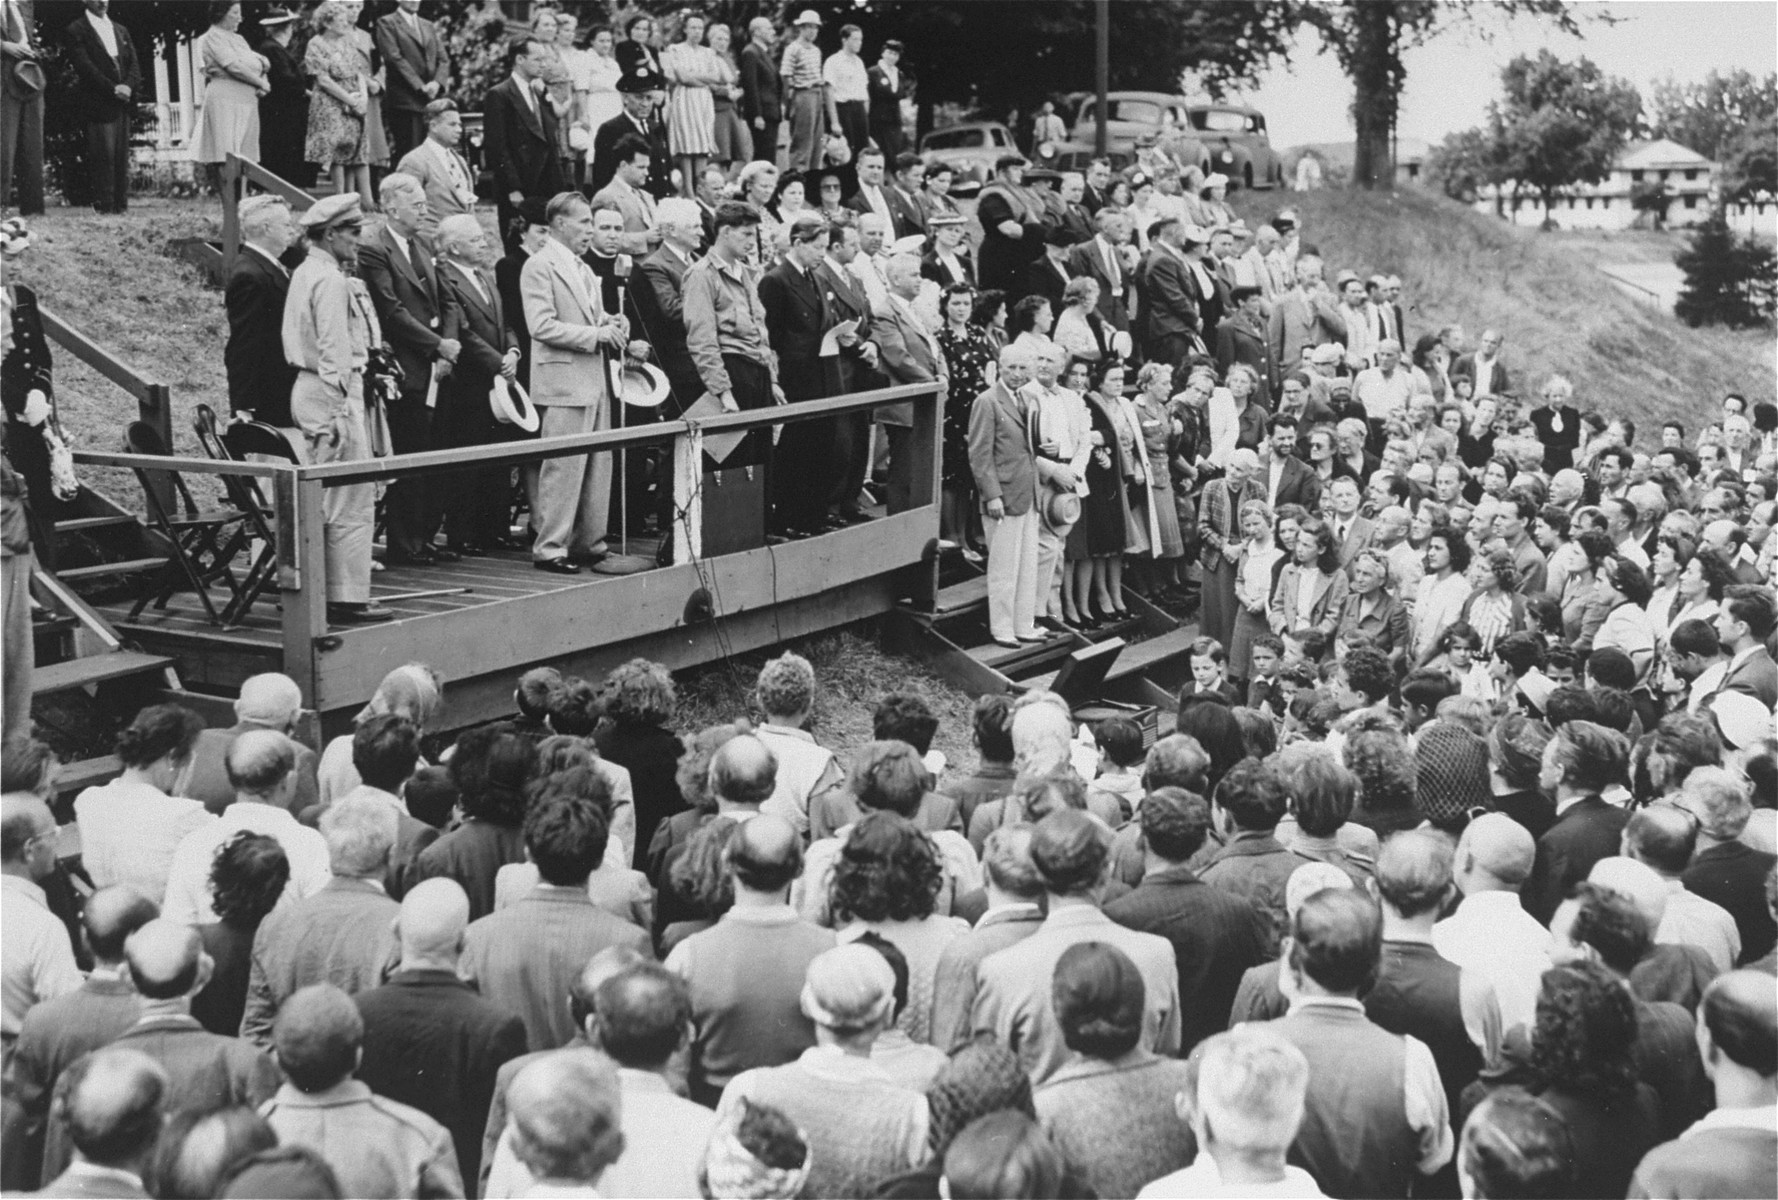 The day after their arrival at Fort Ontario Father J.J. Davem pronounces an invocation at a welcome ceremony for the European refugees.  Among those pictured are Zdenka Levi's brother from Yugoslavia, and Fred Baum, the camp interpreter.